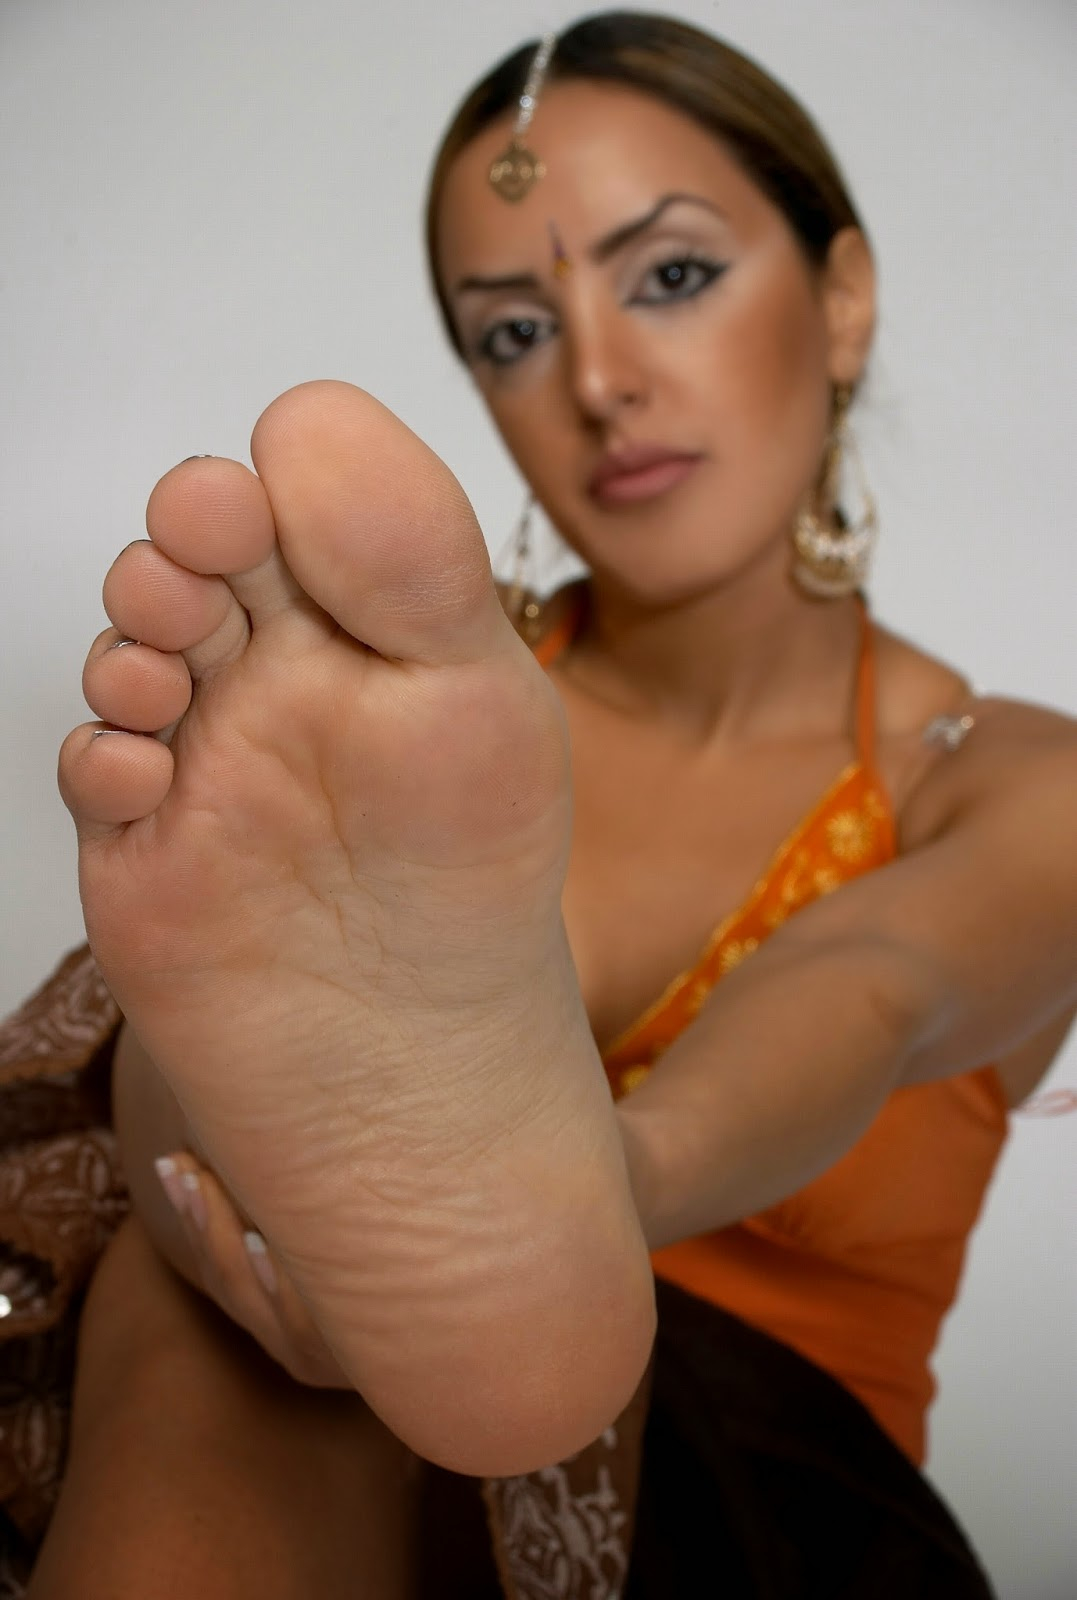 Can suggest lick her heel will not